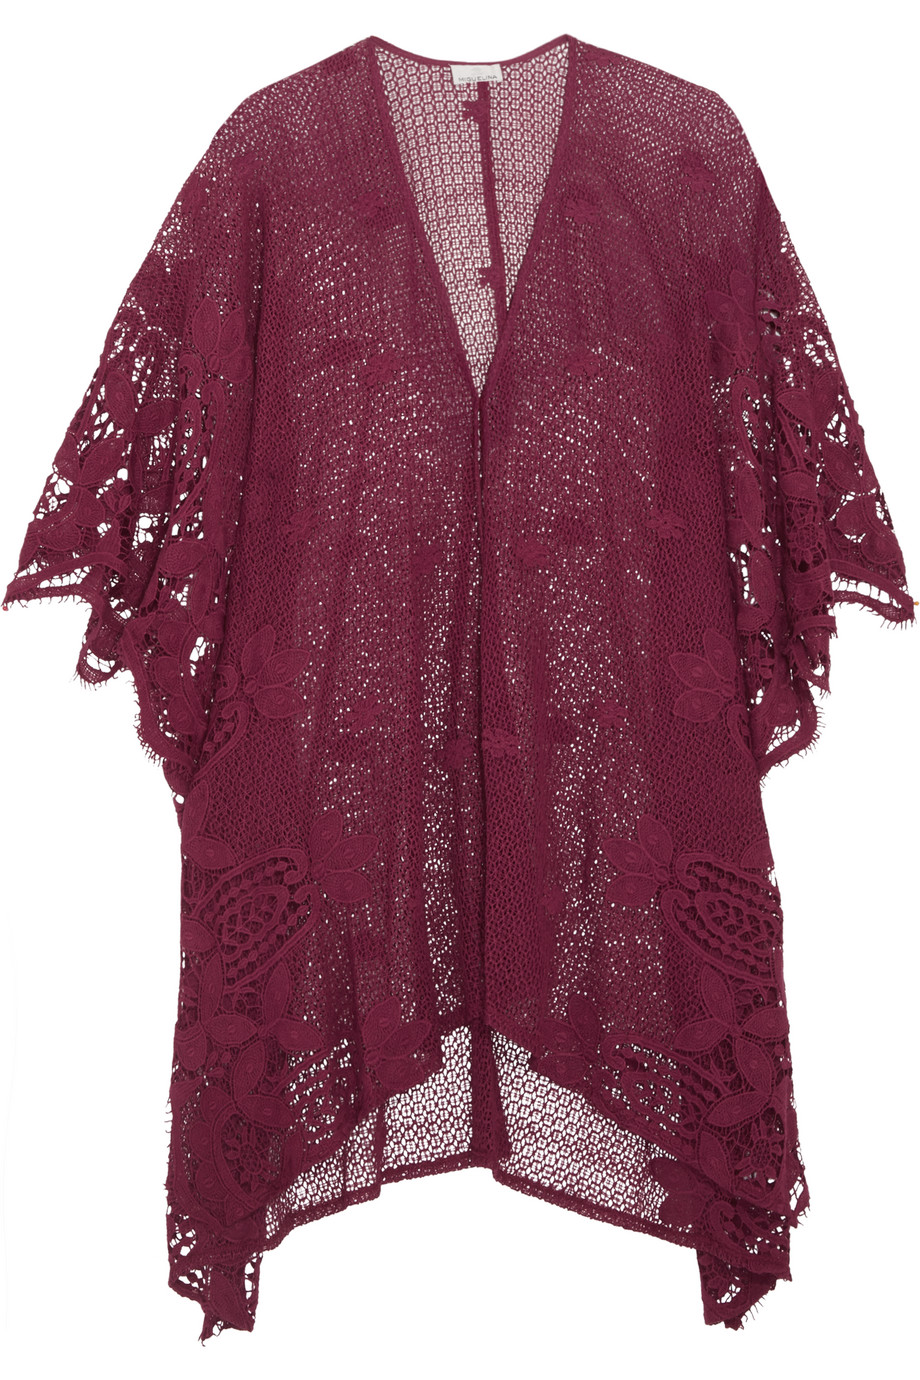 Miguelina Gaby Crocheted Cotton-Lace Kaftan, Claret, Women's